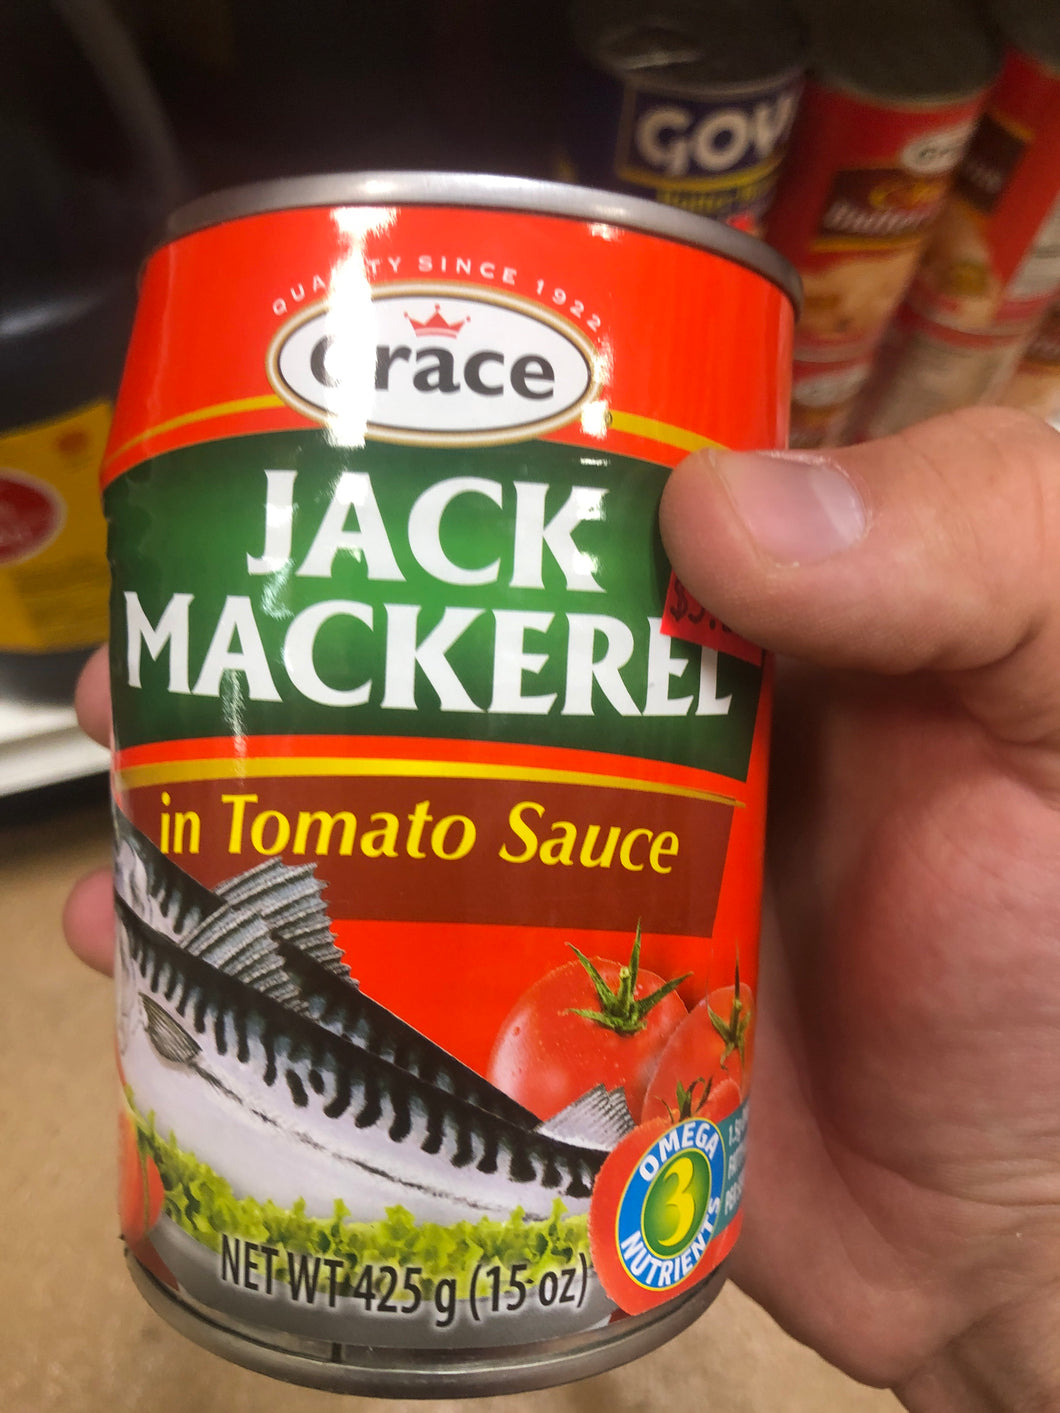 GRACE JACK MACKEREL IN TOMATO SAUCE 15 OZ (CANNED)